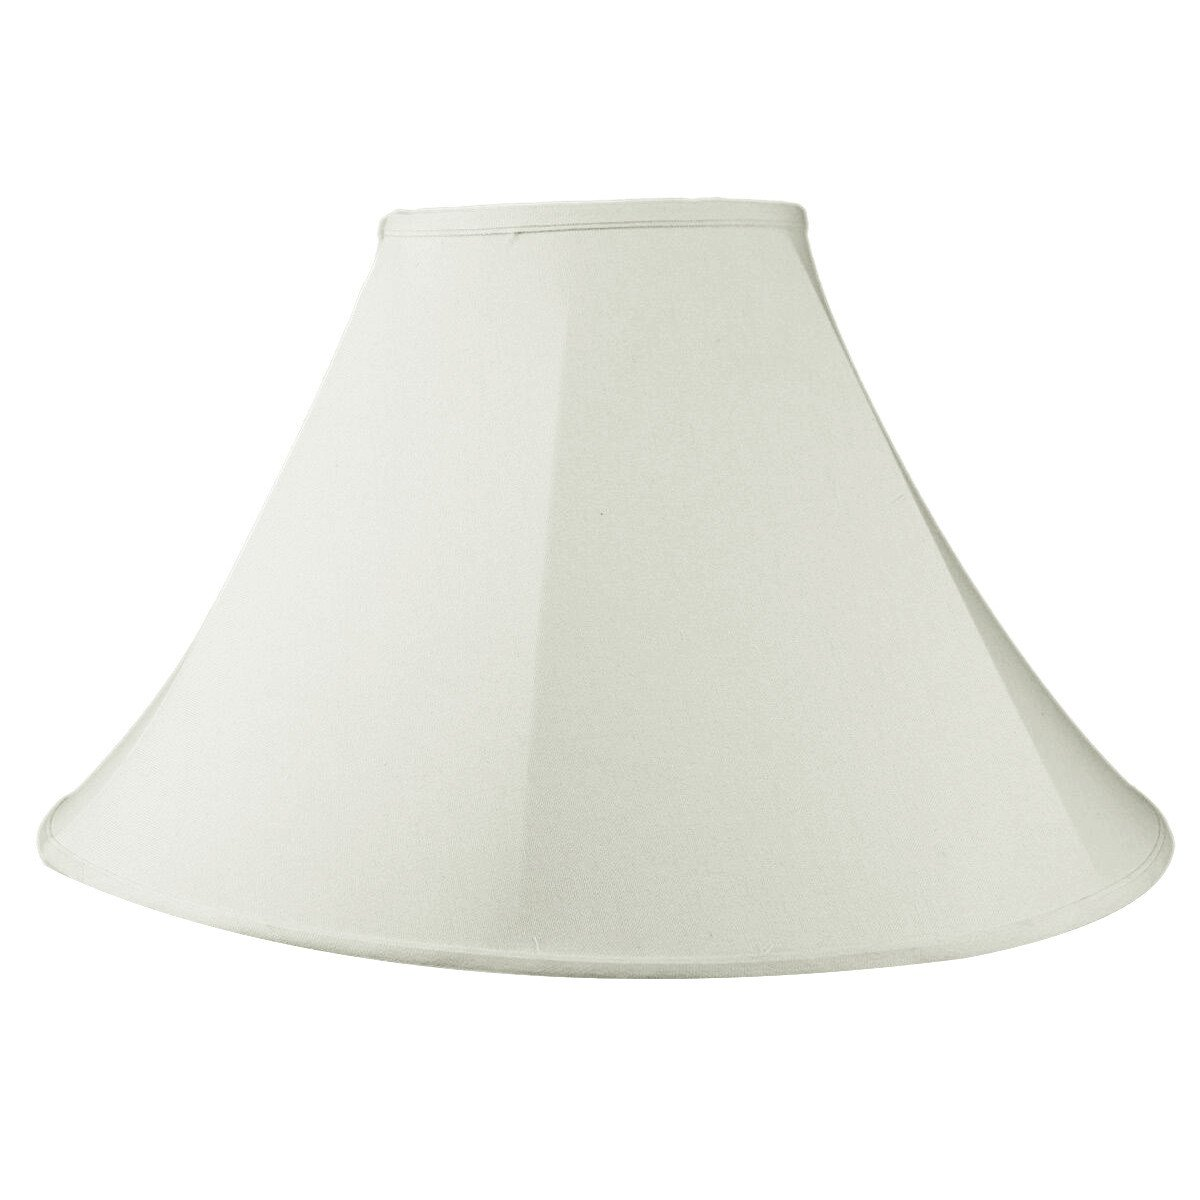 8x22x14 Coolie Lamp Shade Premium Light Oatmeal Linen with Brass Spider fitter by Home Concept - Perfect for table and floor lamps - Large, Off-white by HomeConcept (Image #7)